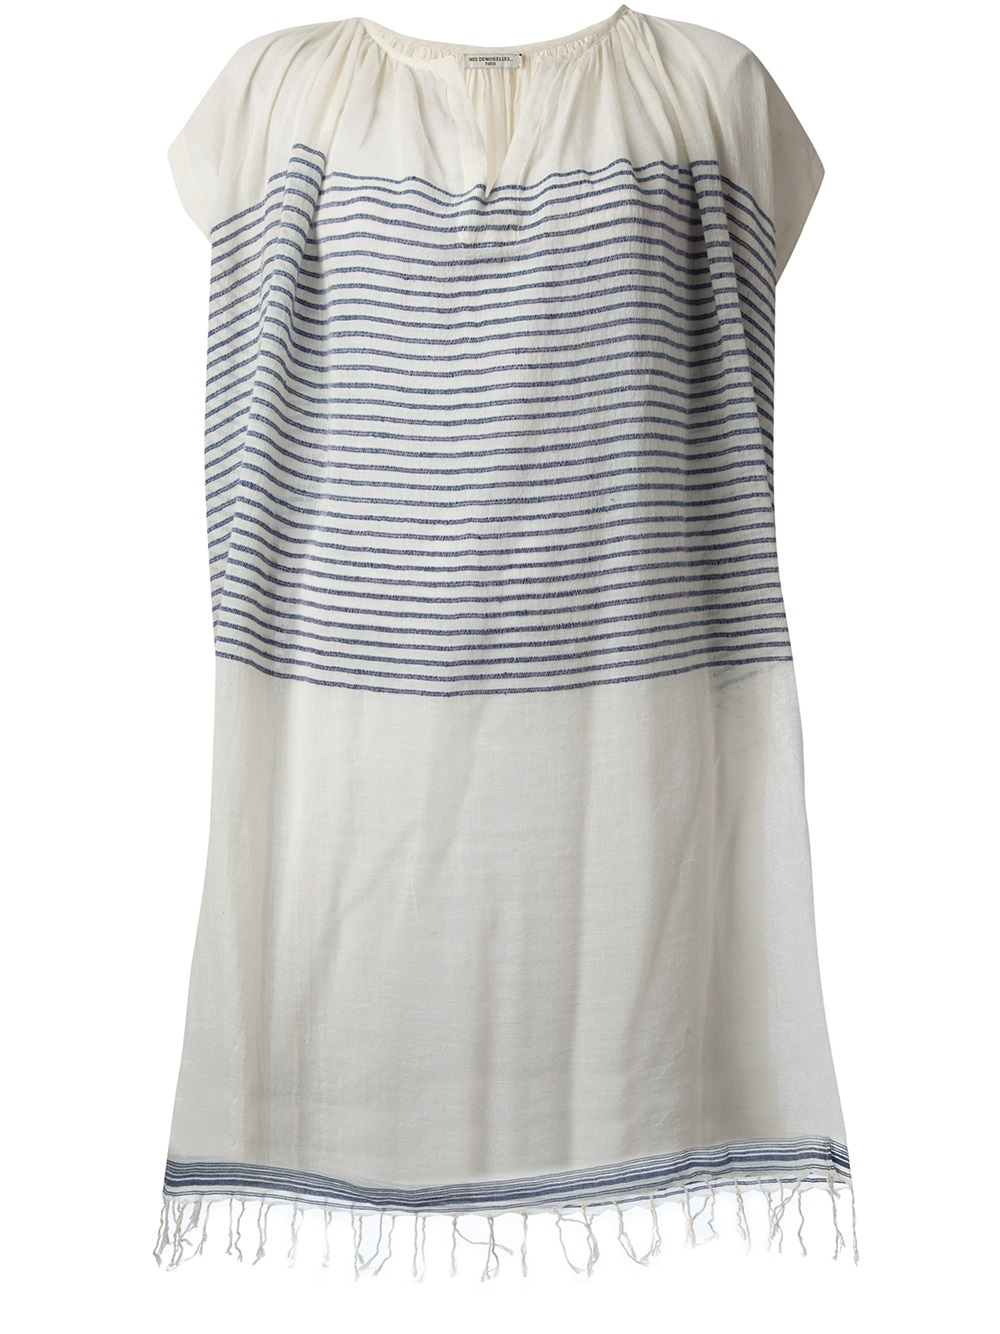 bb77e9f8a2d Mes Demoiselles Donis Oversized Tunic Dress in White - Lyst